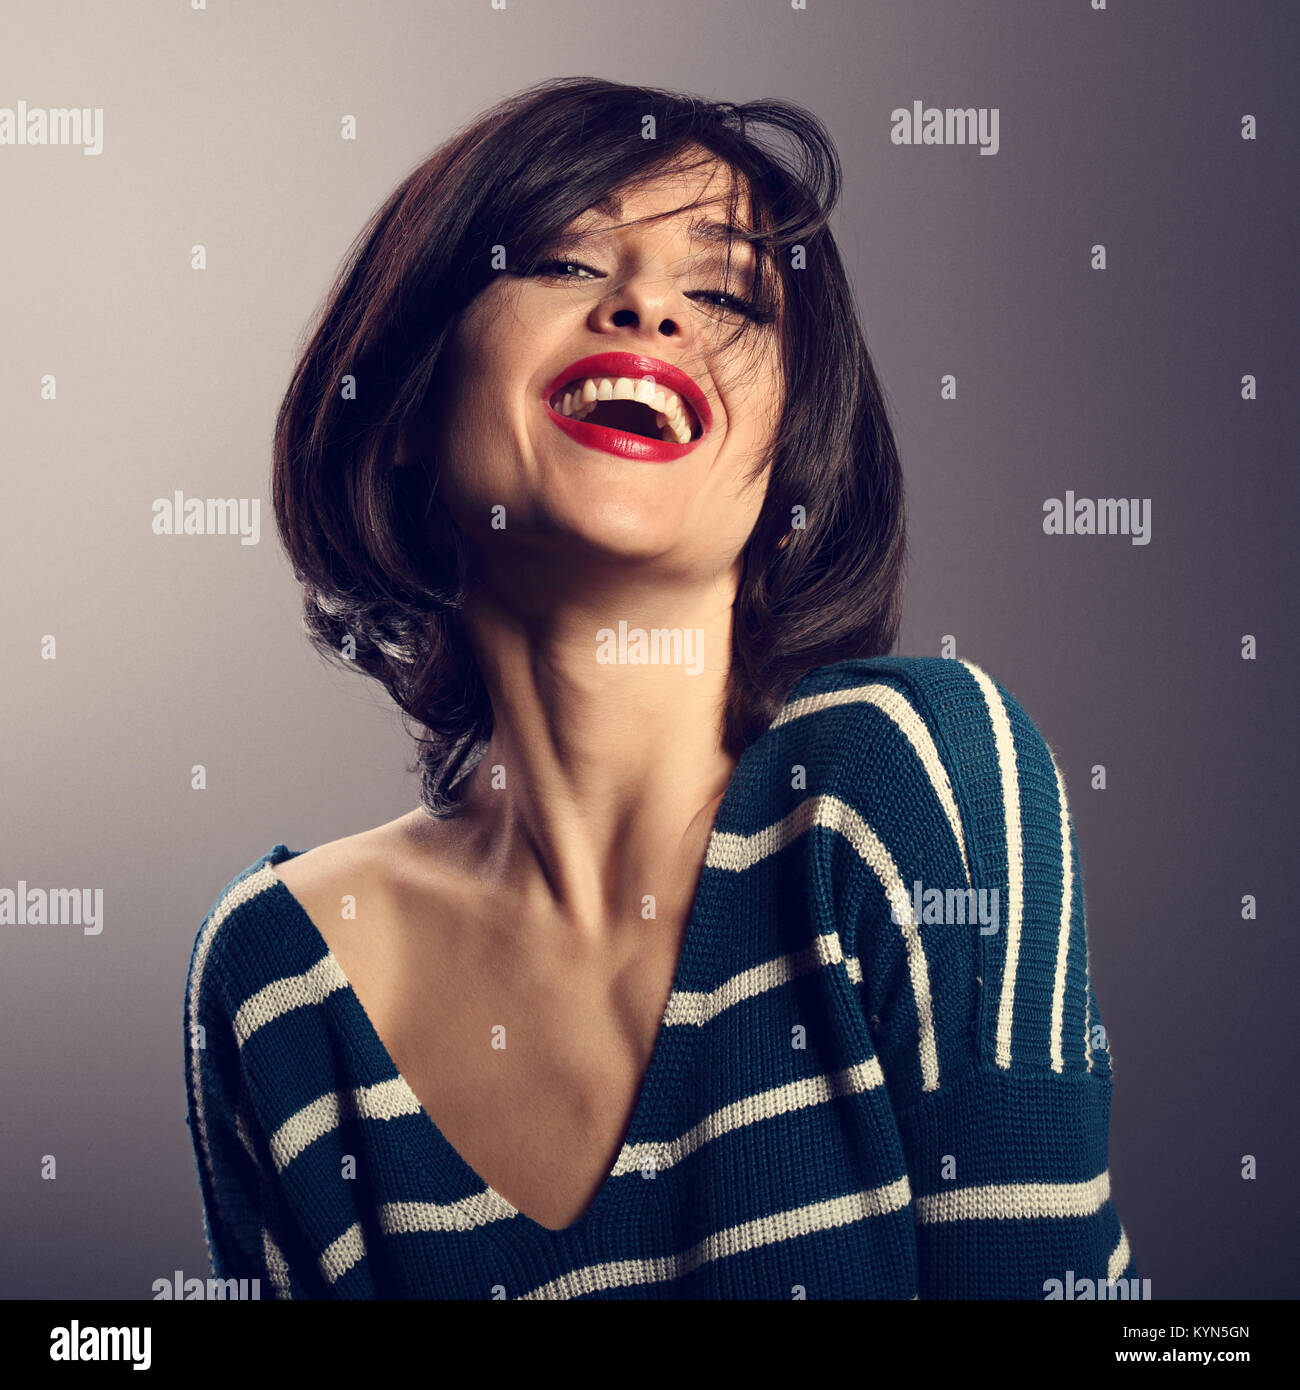 Happy loudly laughing with wide open mouth young woman with short hair in fashion sweater. portrait - Stock Image